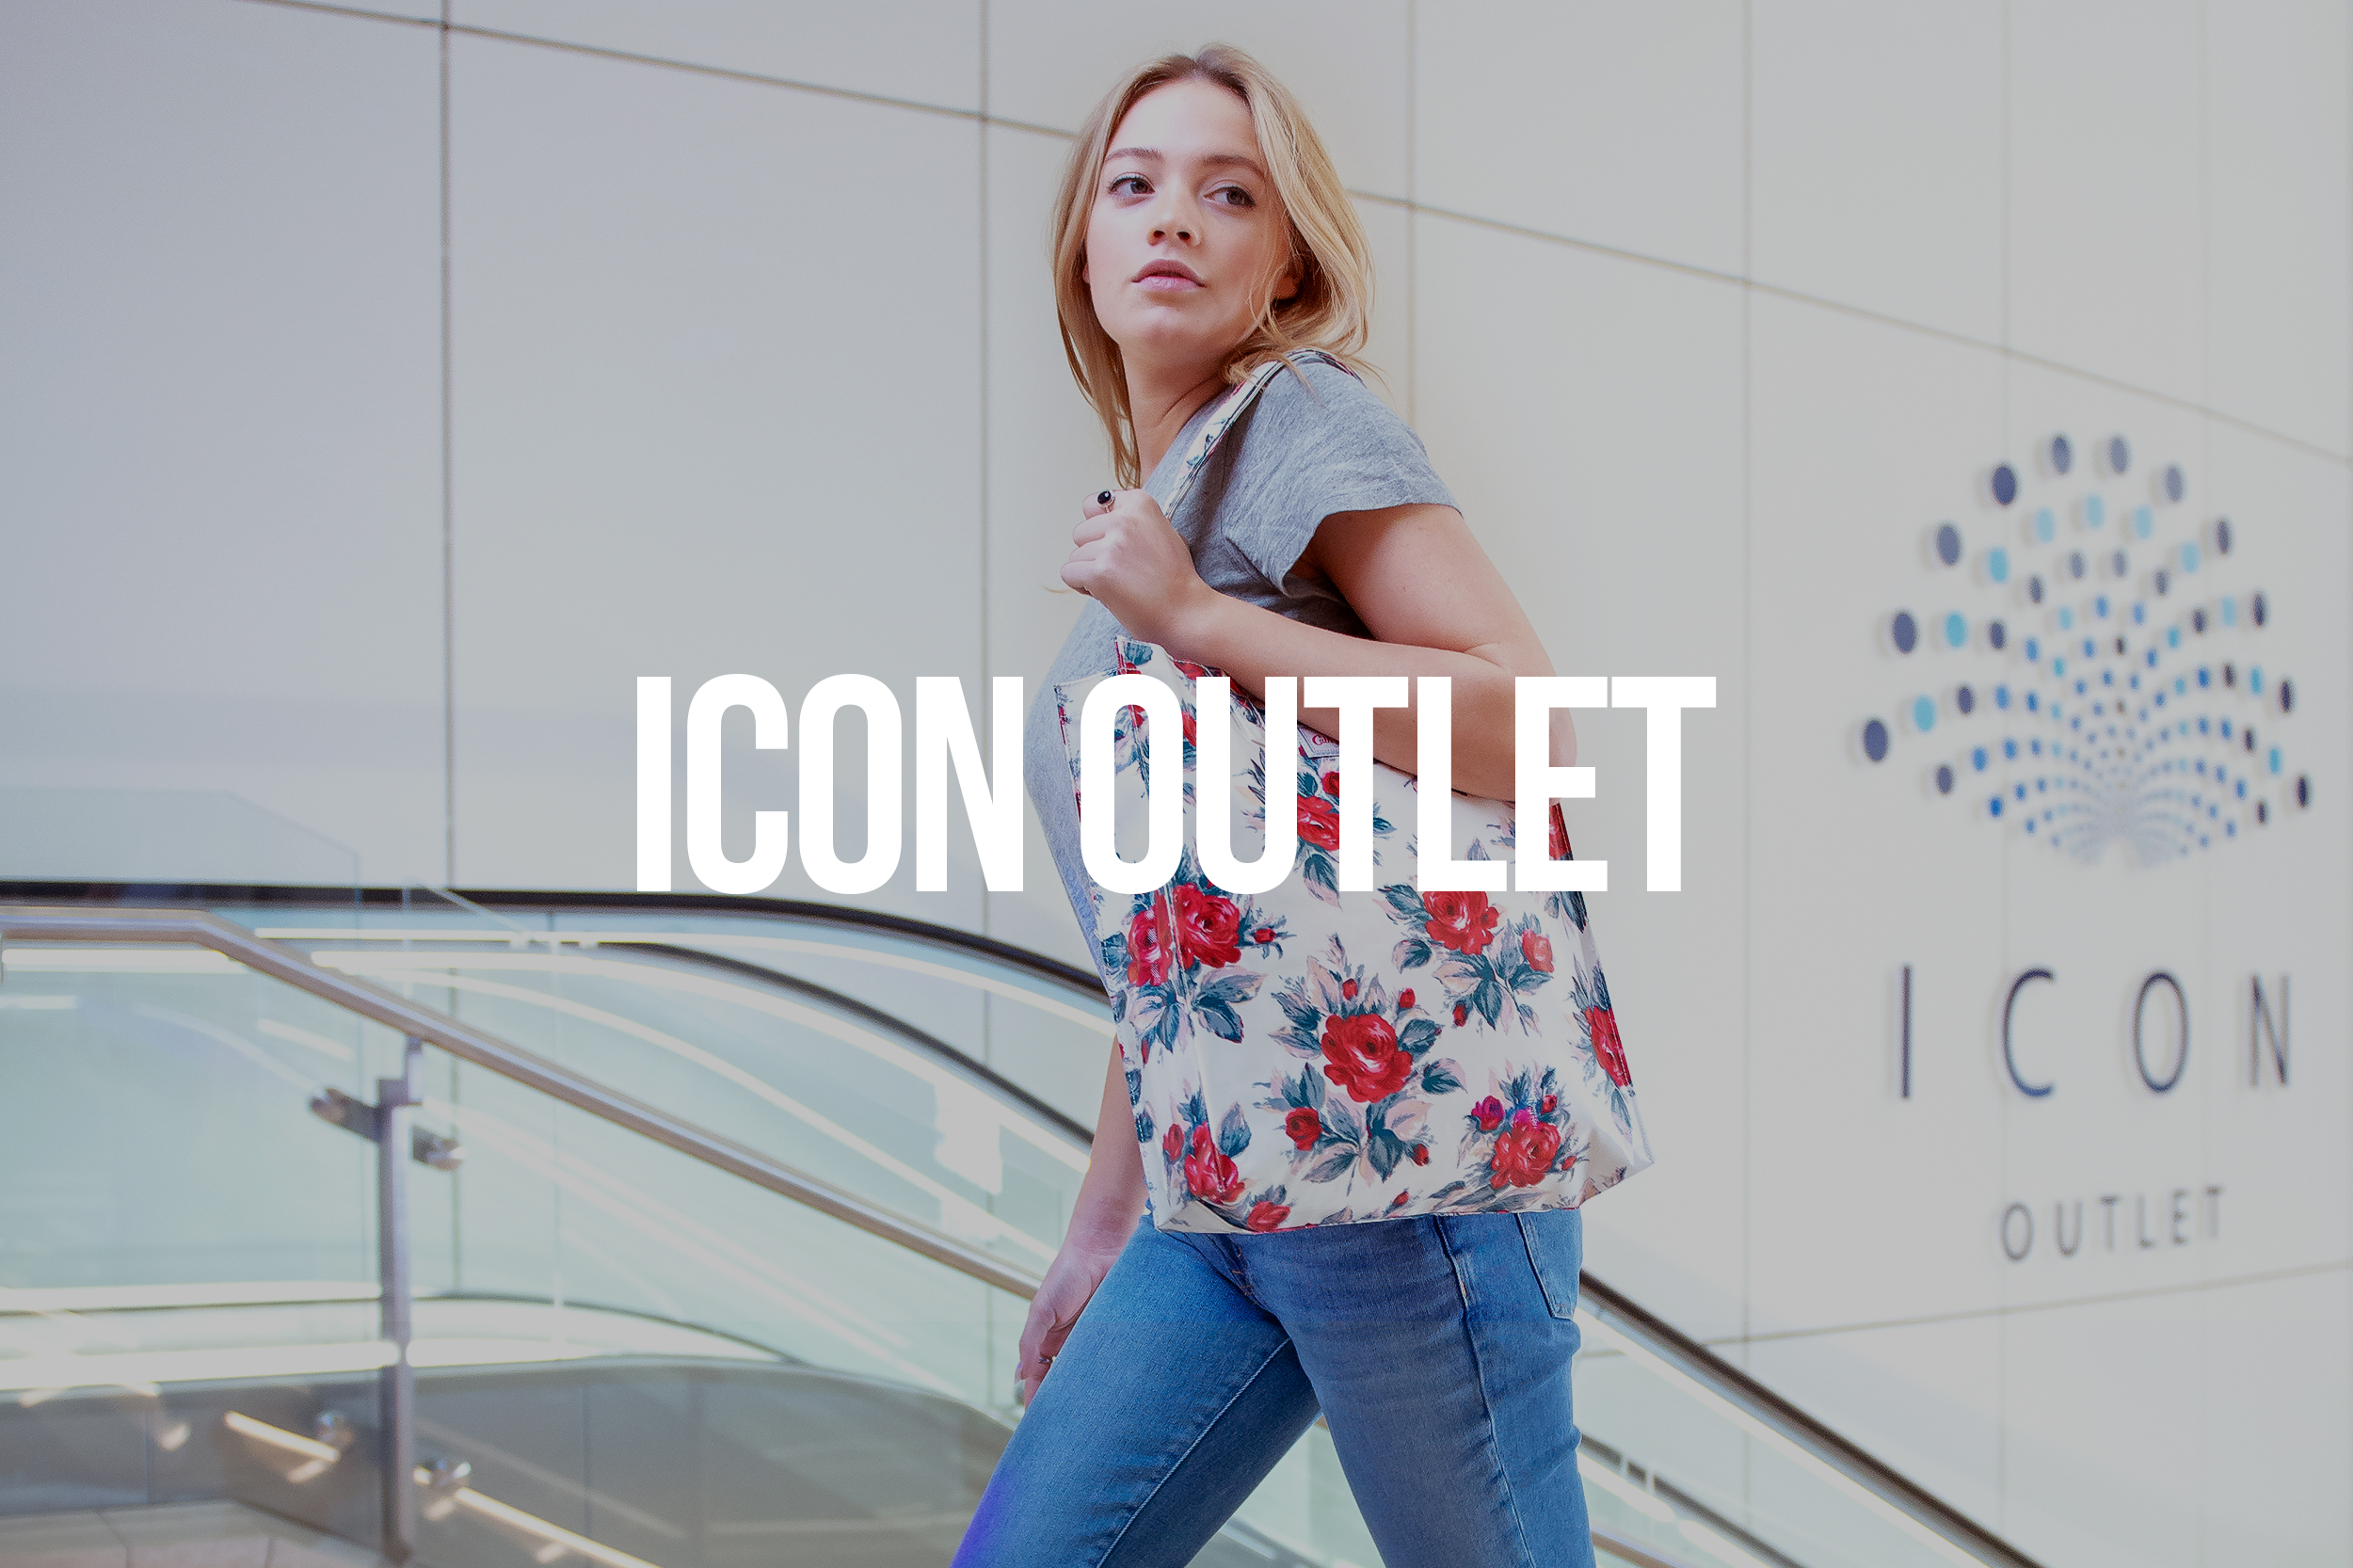 Icon-Outlet.jpg